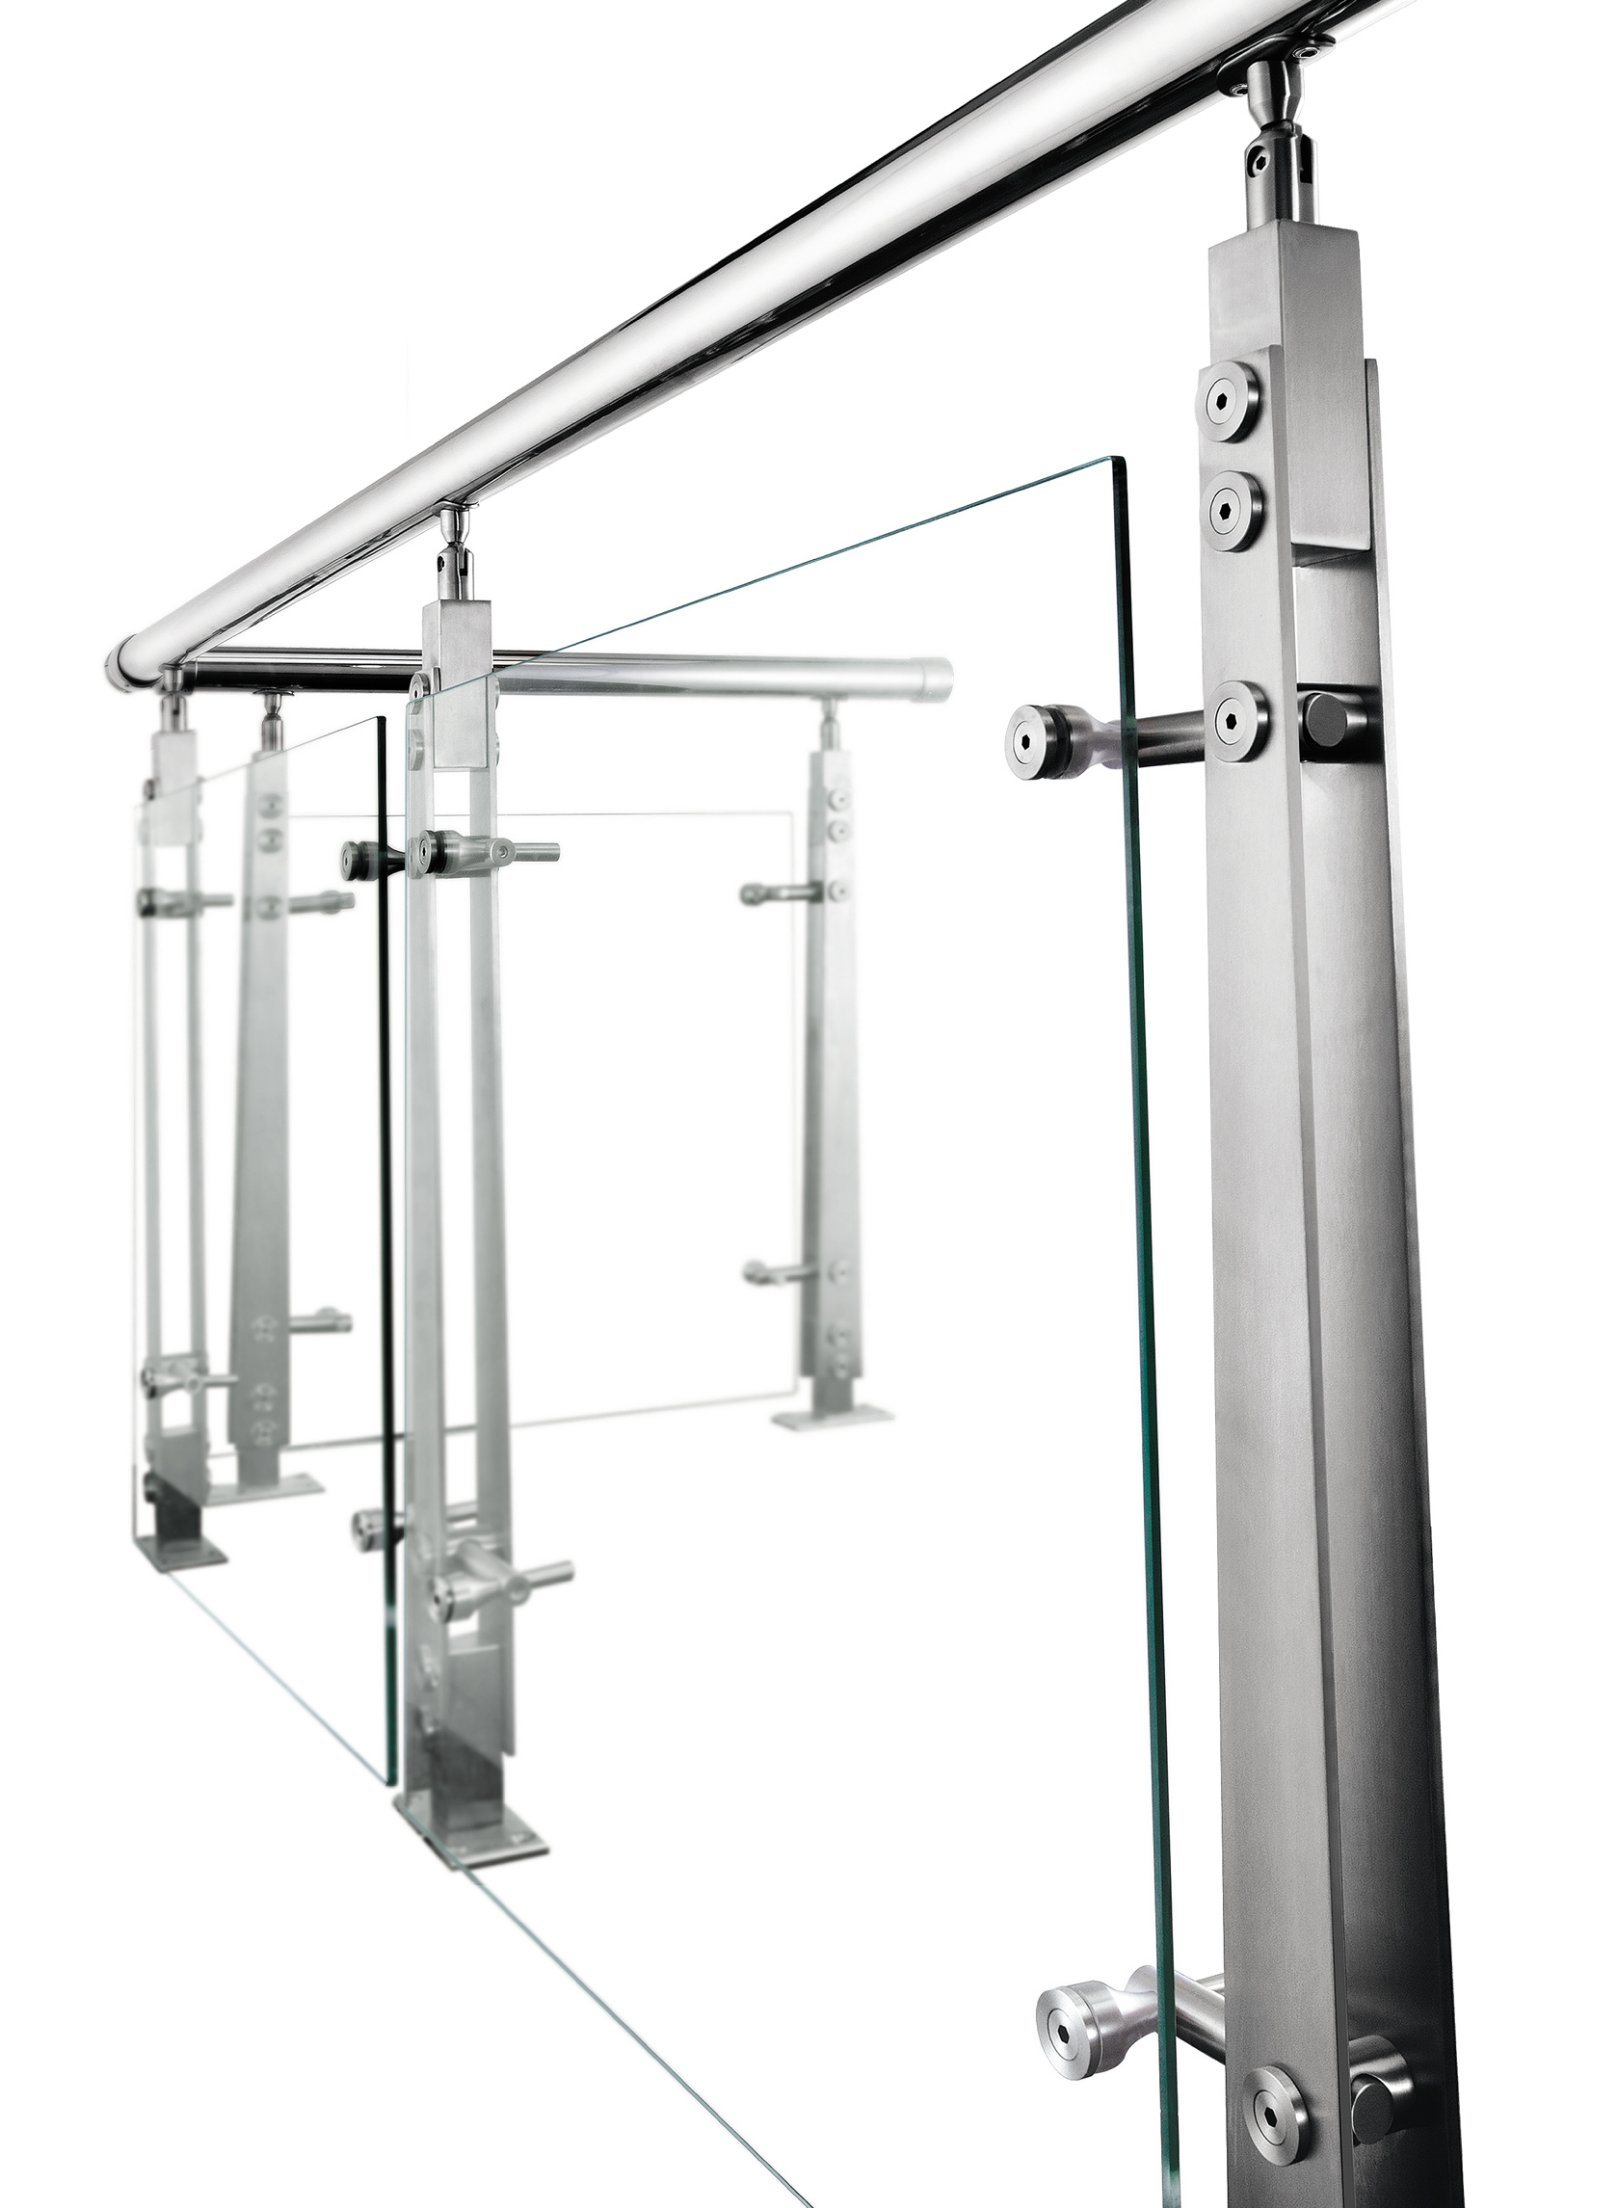 Stainless Handrail Fittings for Glass Support